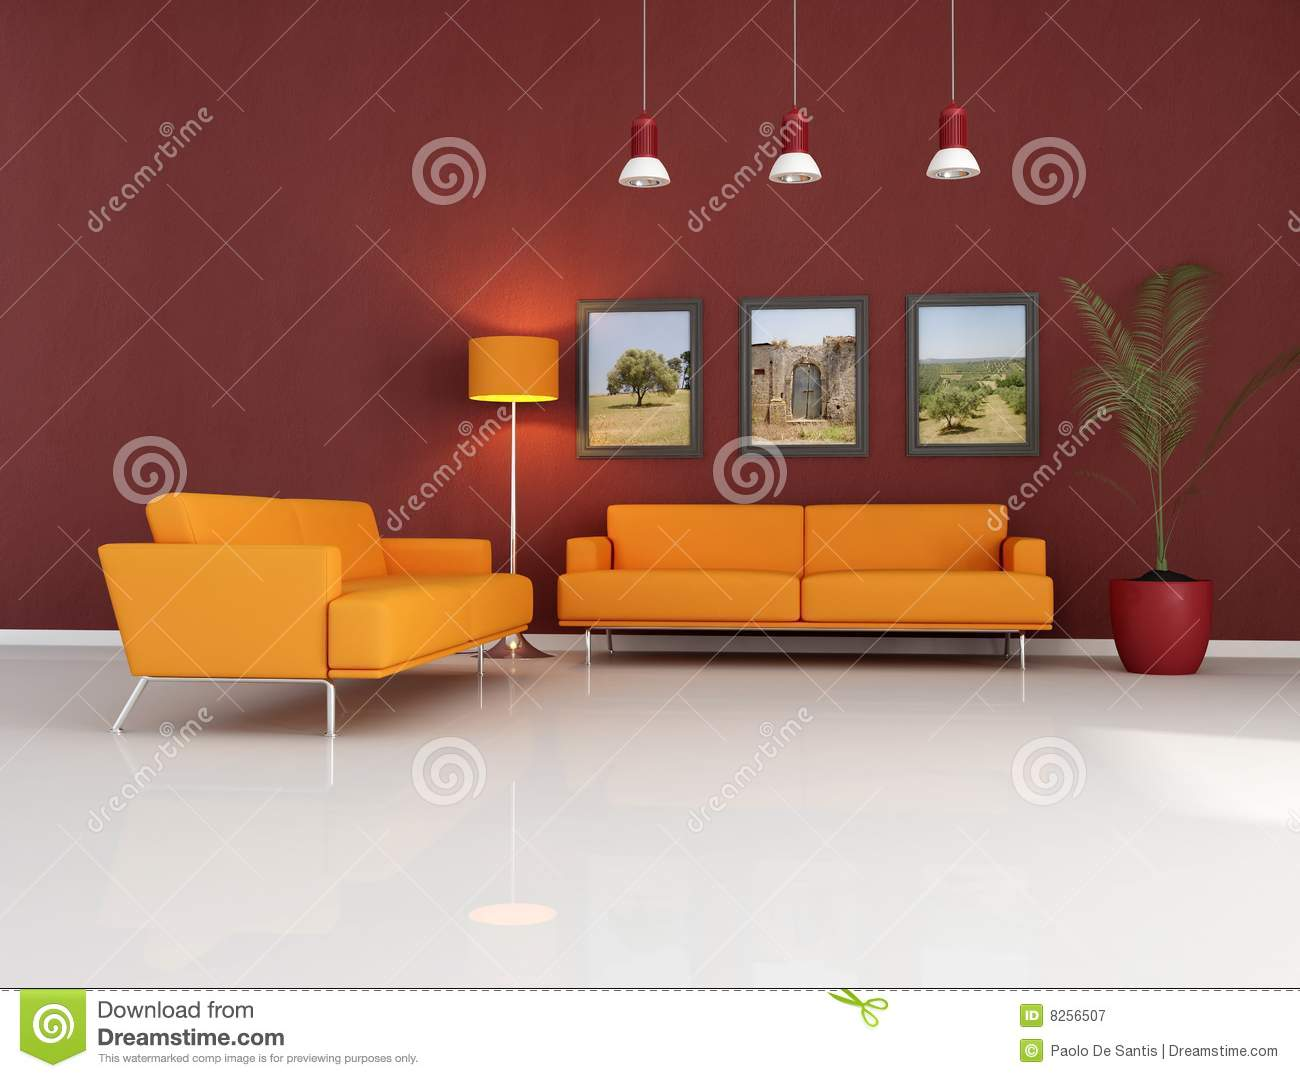 wohnzimmer couch modern:Orange Living Rooms with Couches